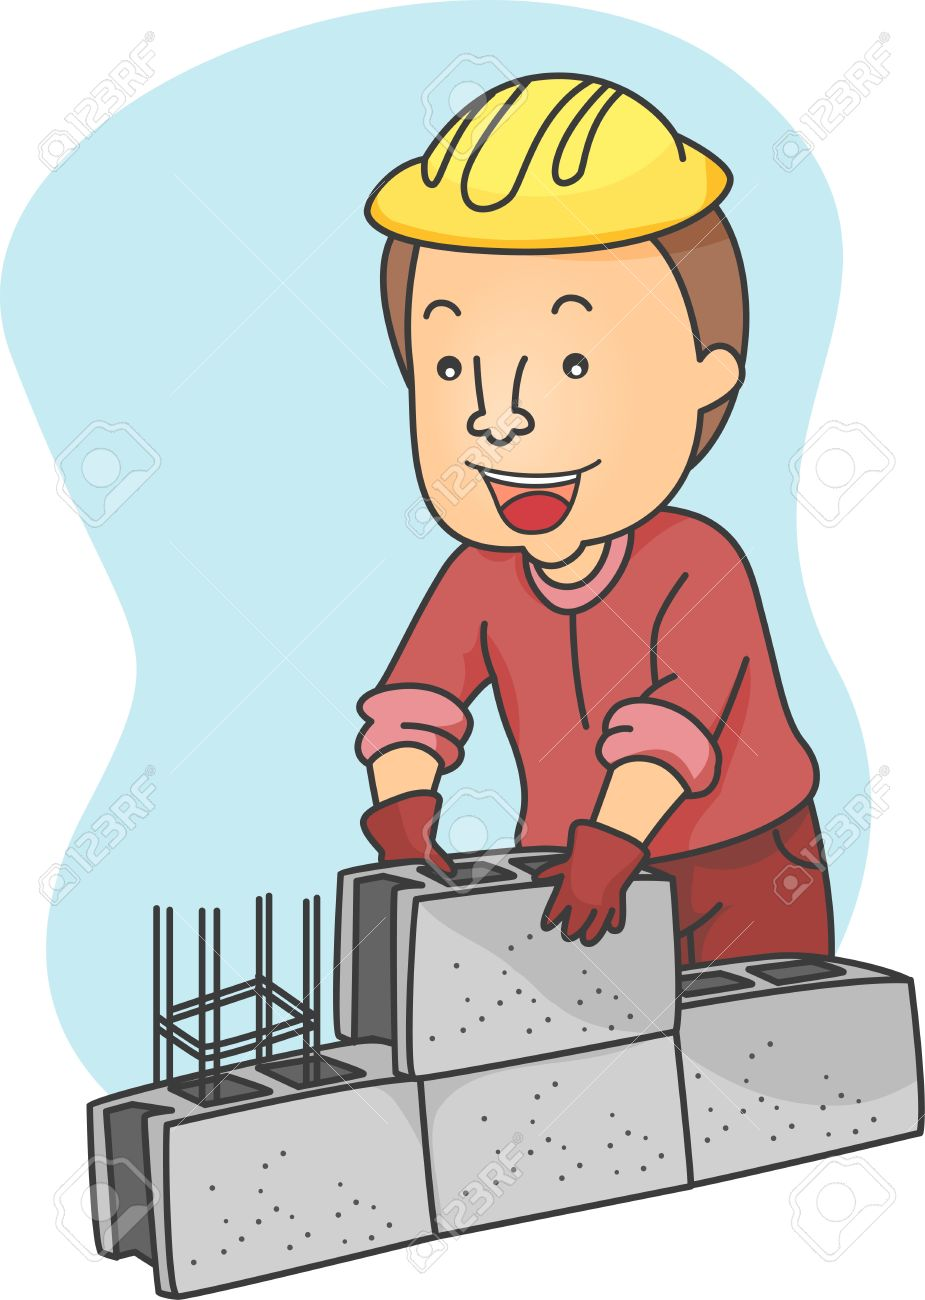 Piling clipart #6, Download drawings